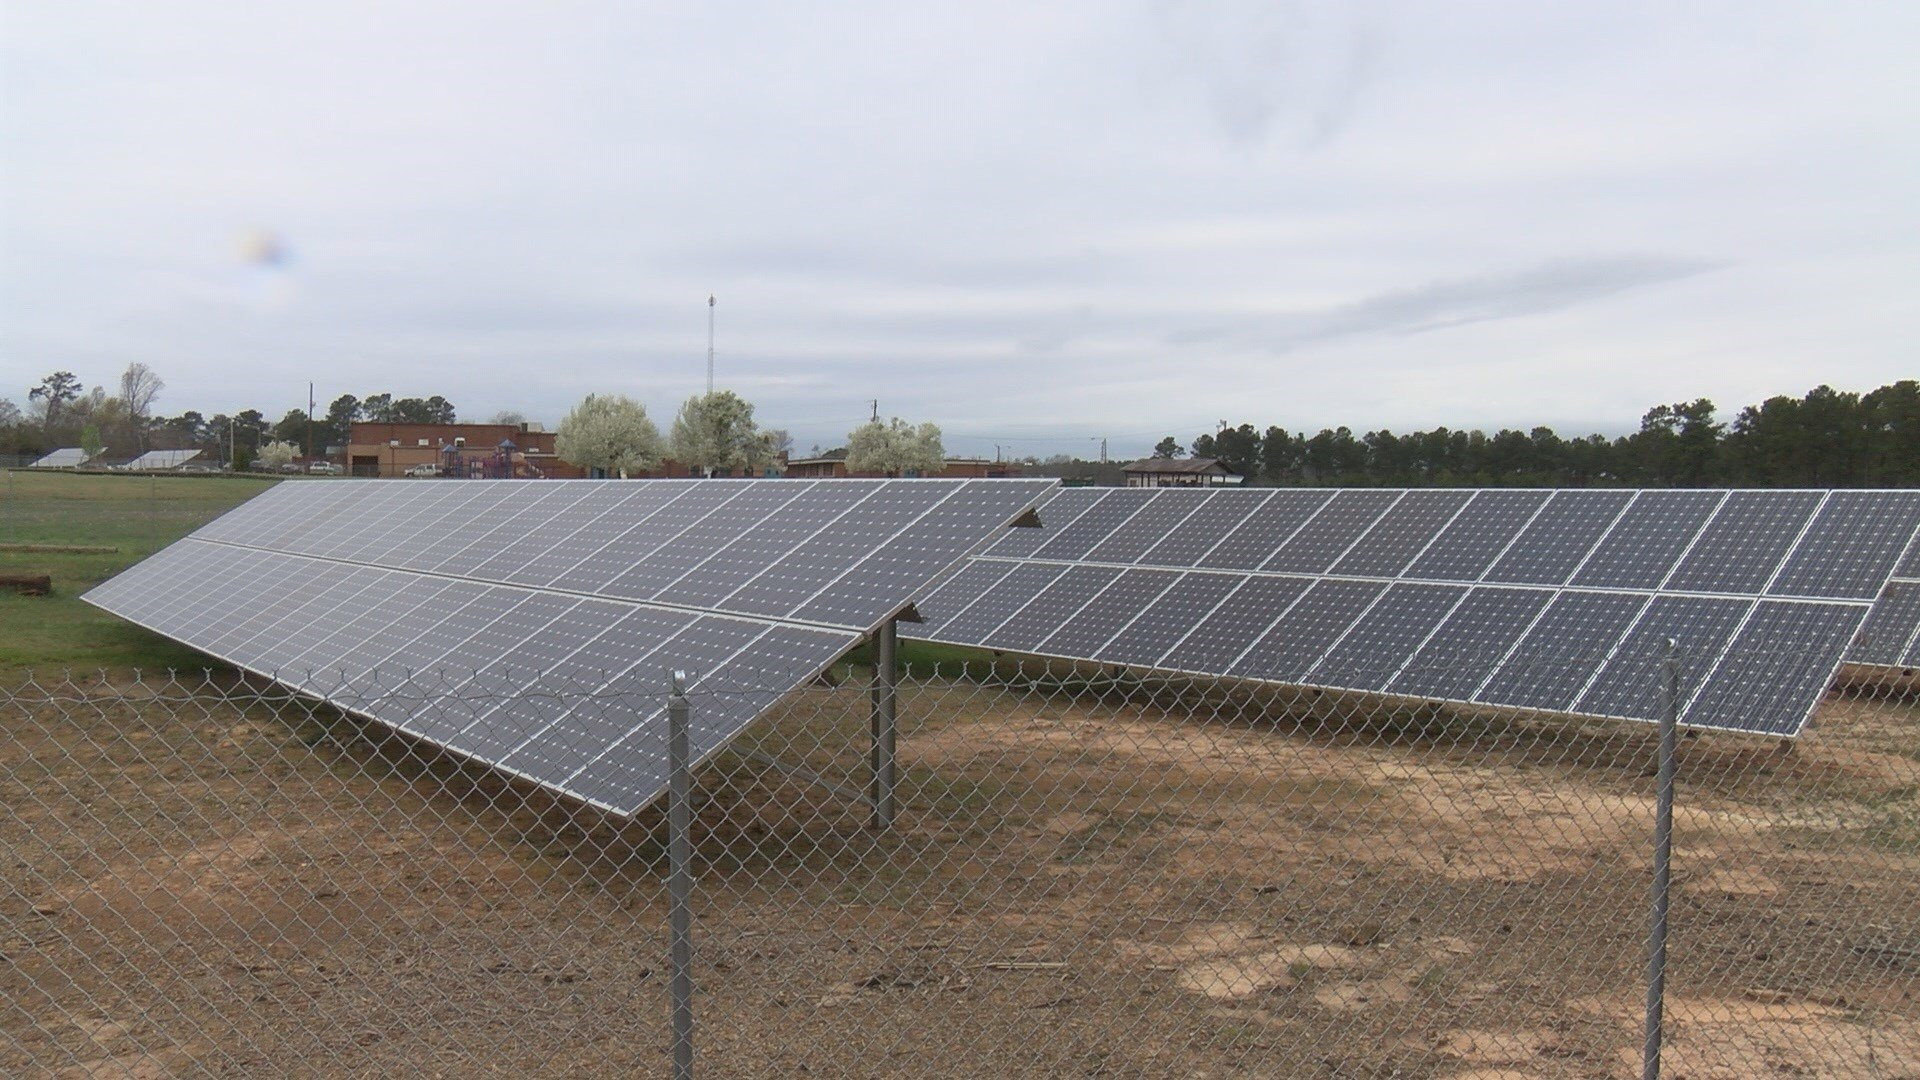 A 1600 panel solar farm generates energy on the campus of W. E. Parker Elementary in Edgefield (WFXG)